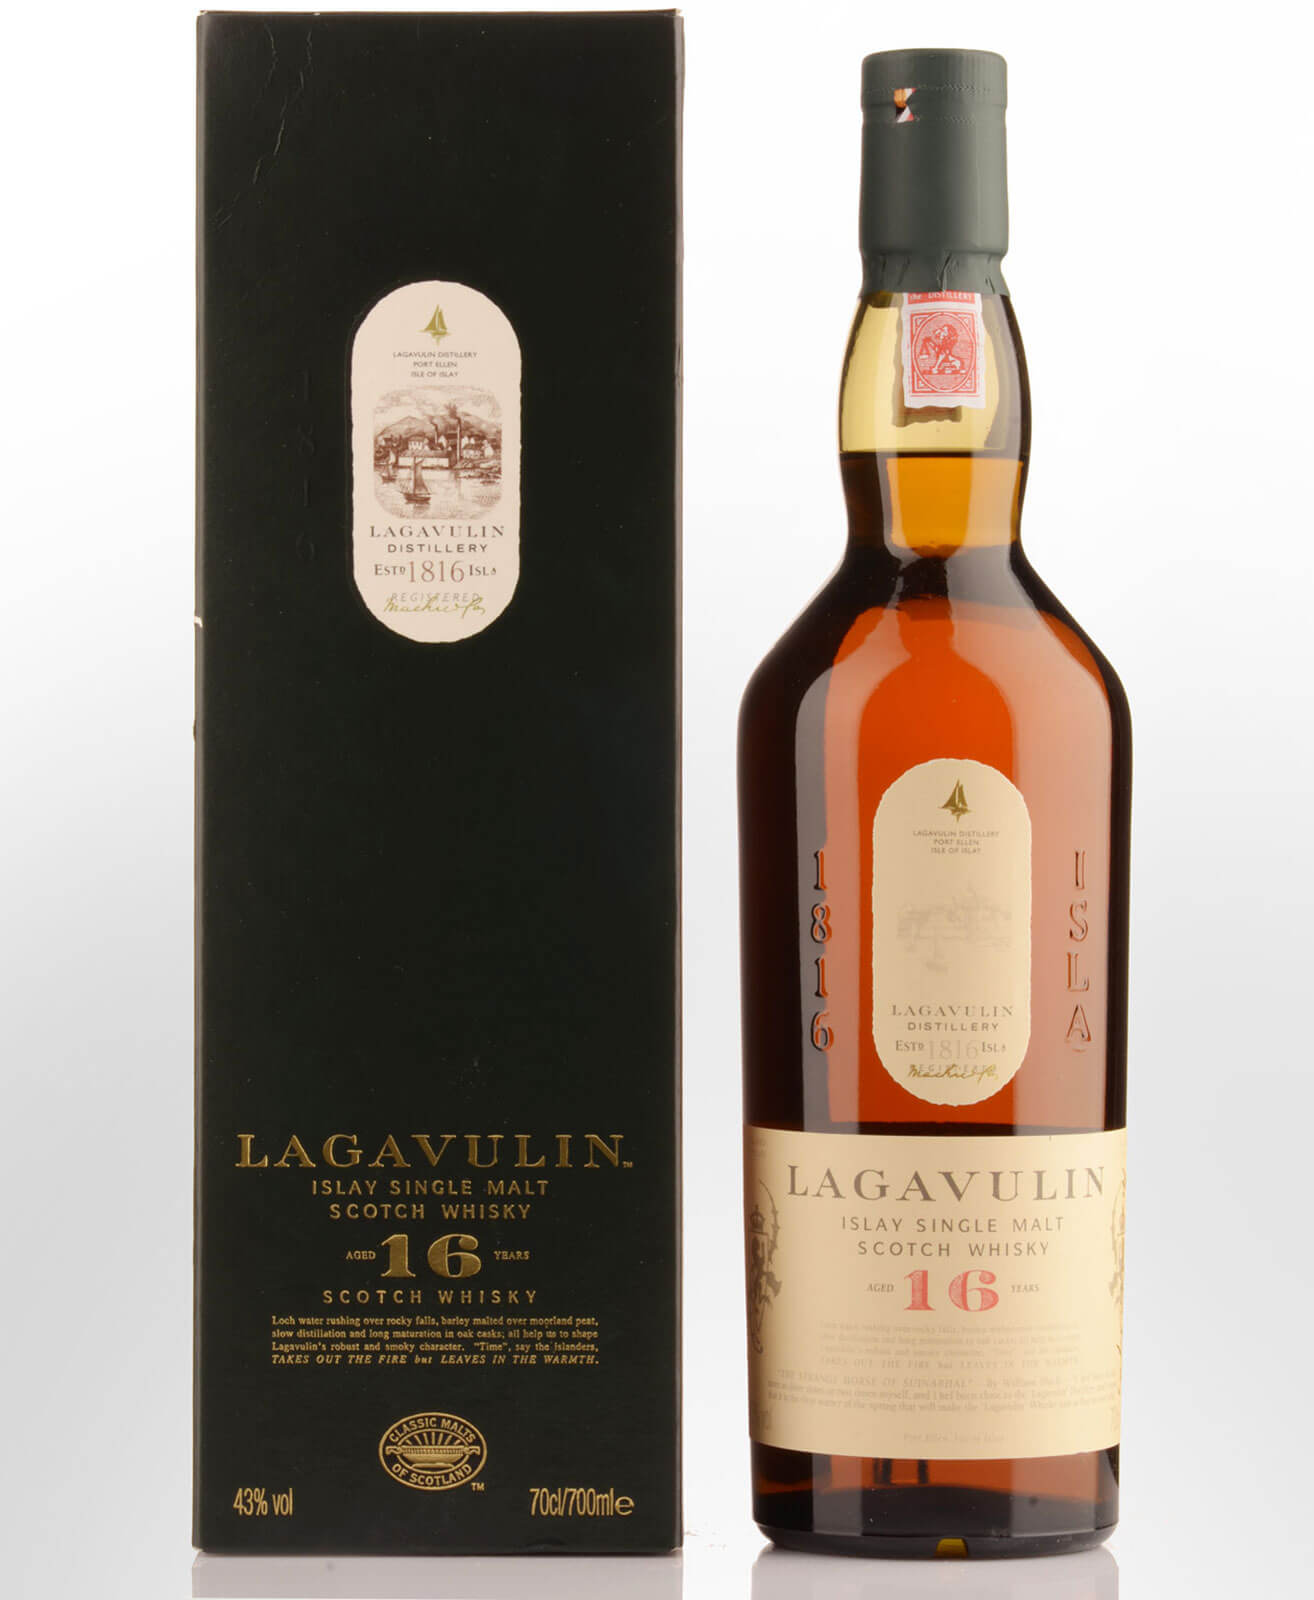 Lagavulin 16-year-old Islay whisky